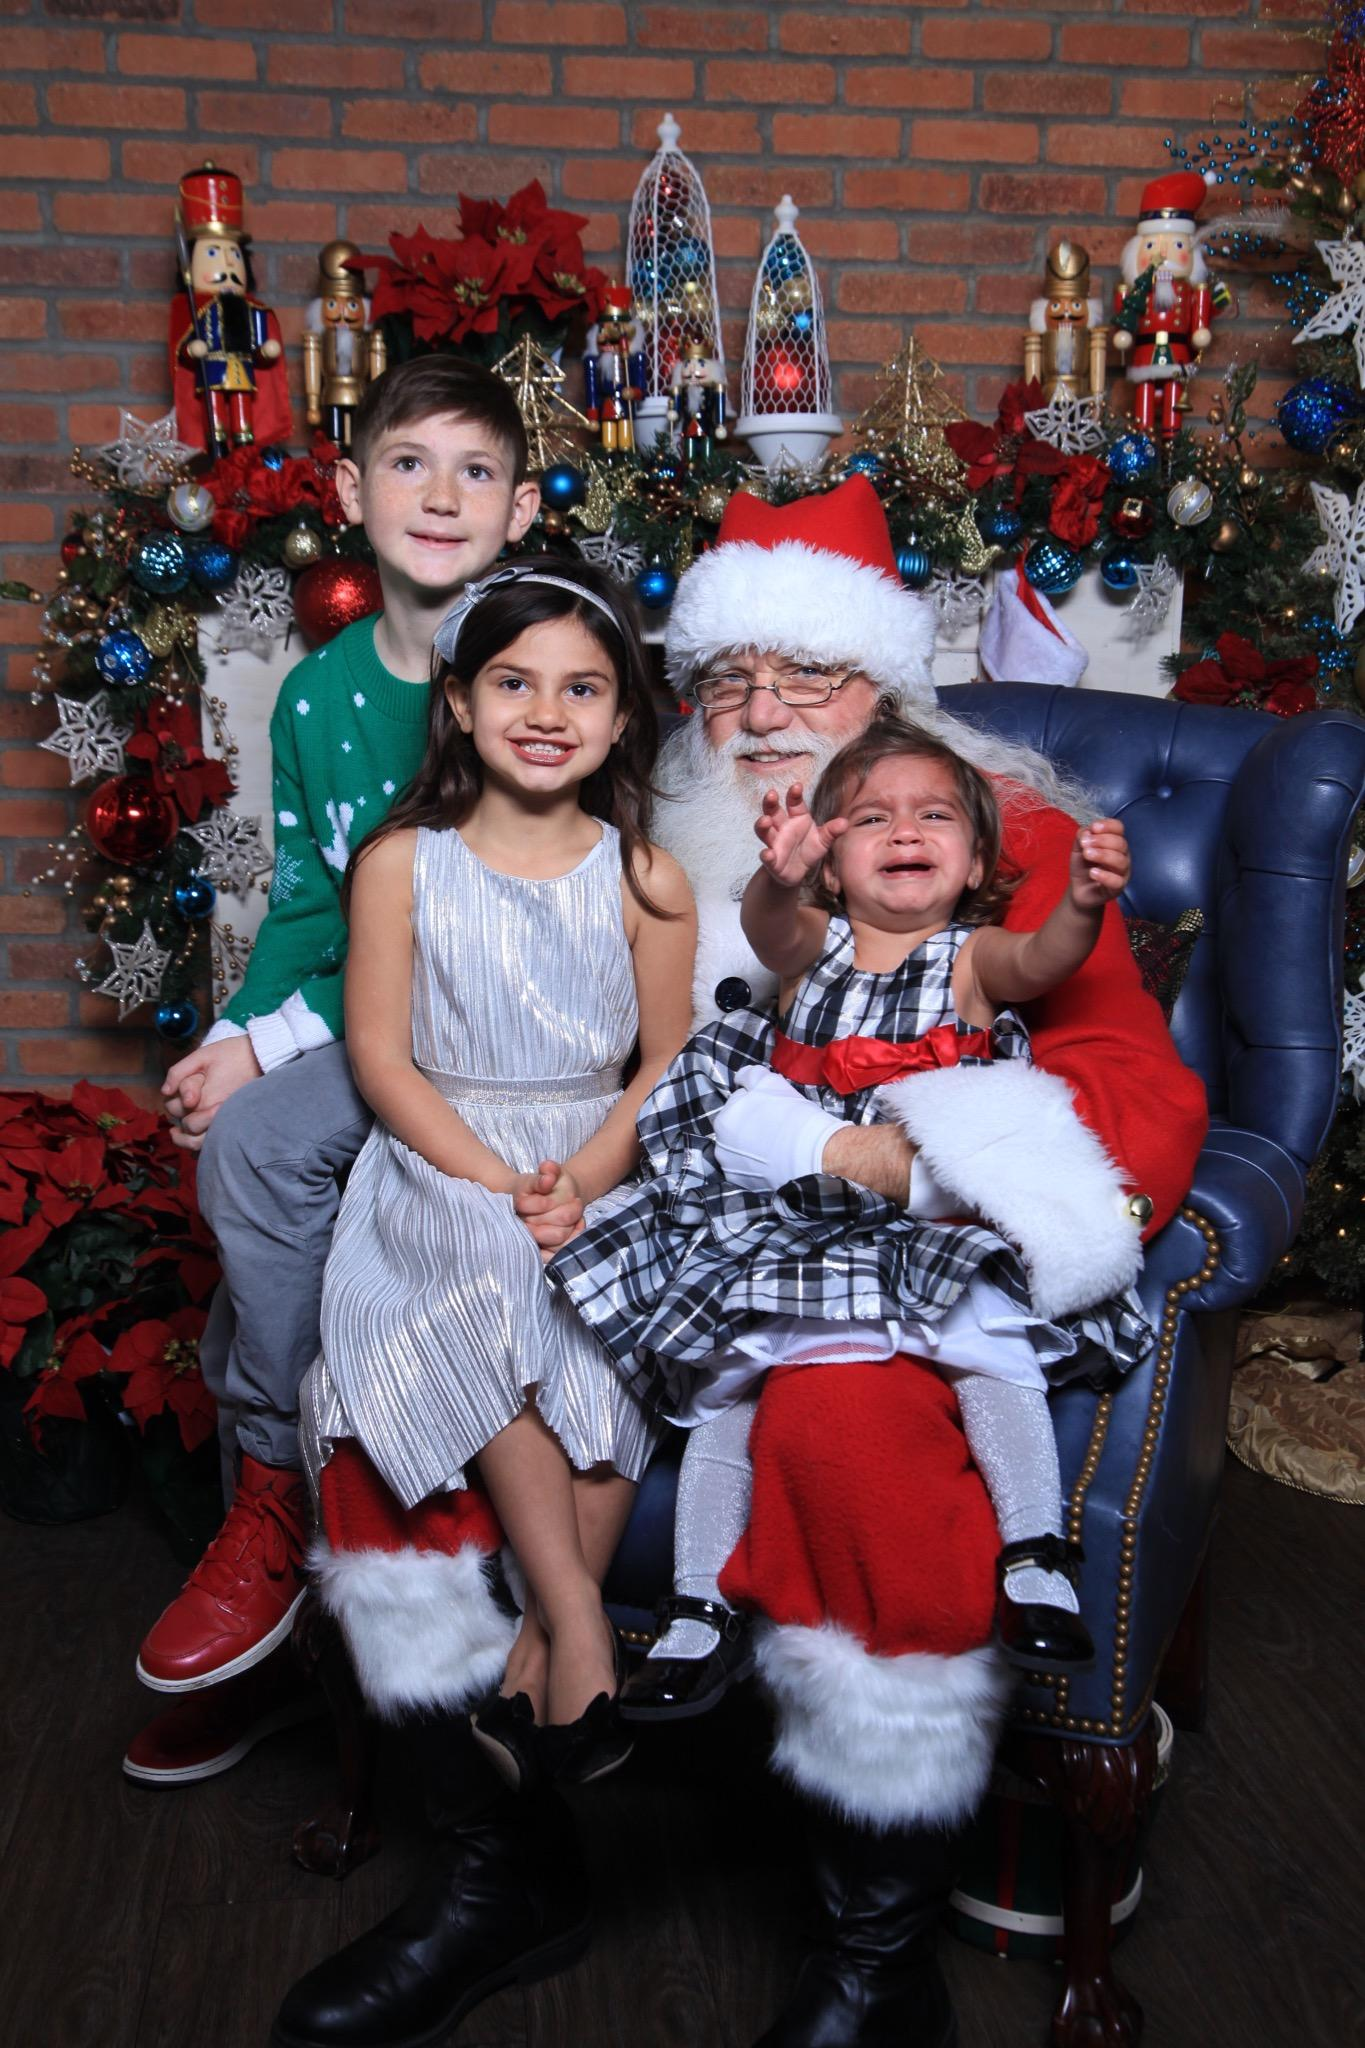 Ah, Santa Claus - the glorious bearded man in the big red suit who fulfills our kiddos holiday dreams and wishes.  Also doubling as, apparently, the scariest man alive. Grab a glass of eggnog, sit back and feast your eyes on these Santa pics gone wrong - or as I call them...realistic Santa pics. (Image: Tracy Chopra)